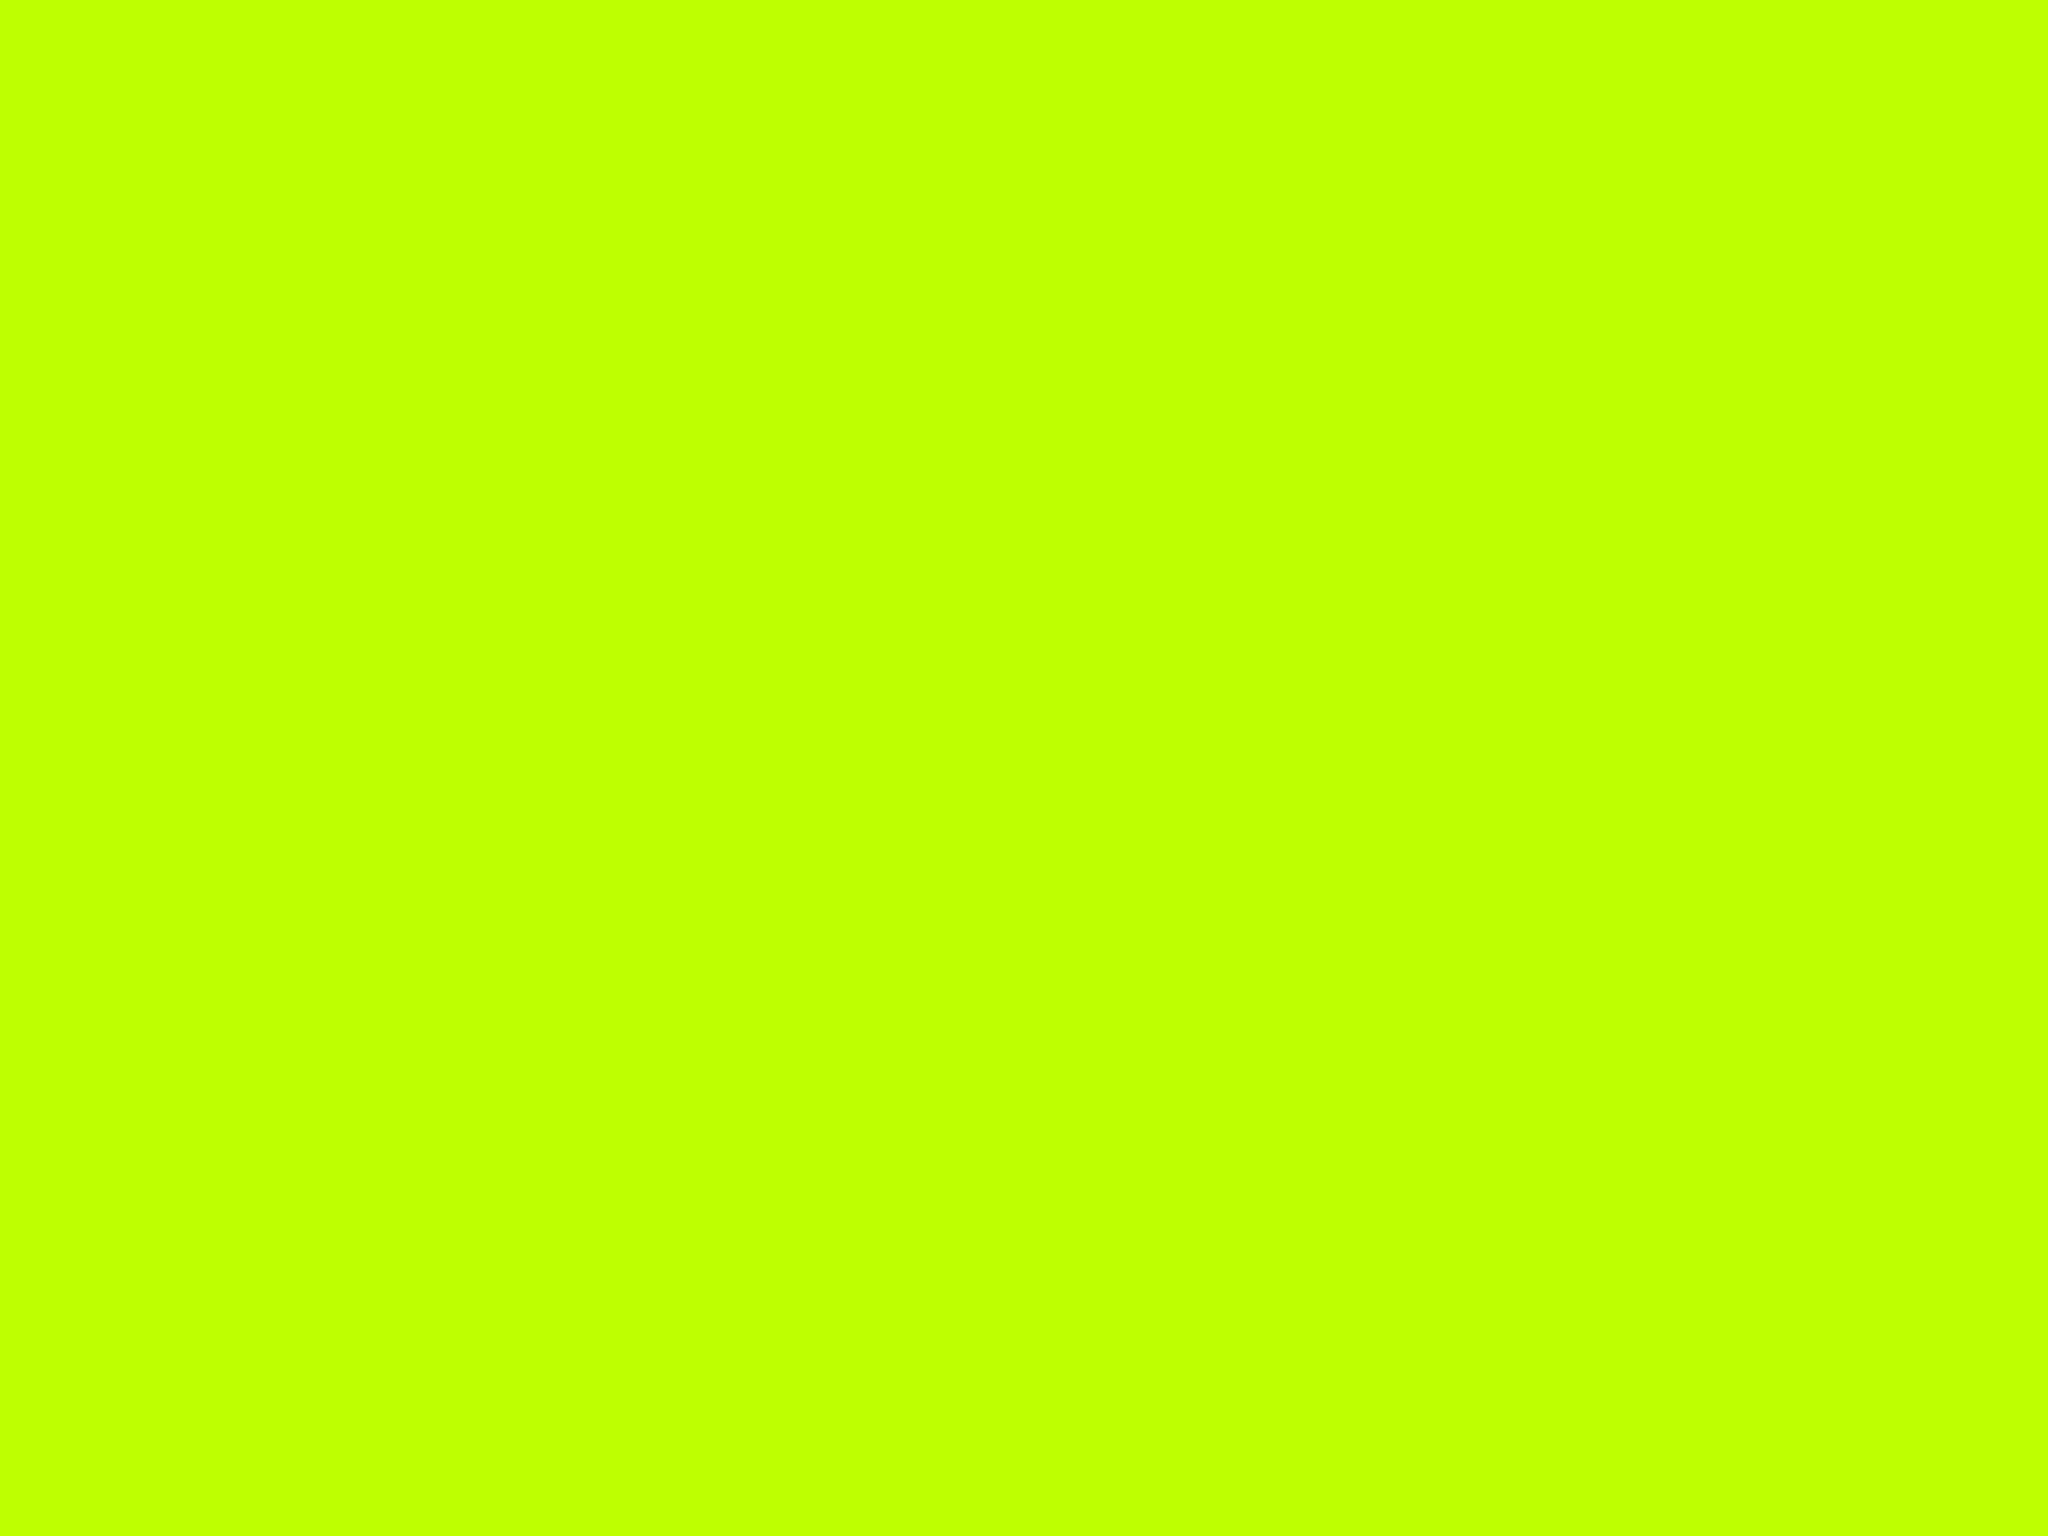 2048x1536 Bitter Lime Solid Color Background